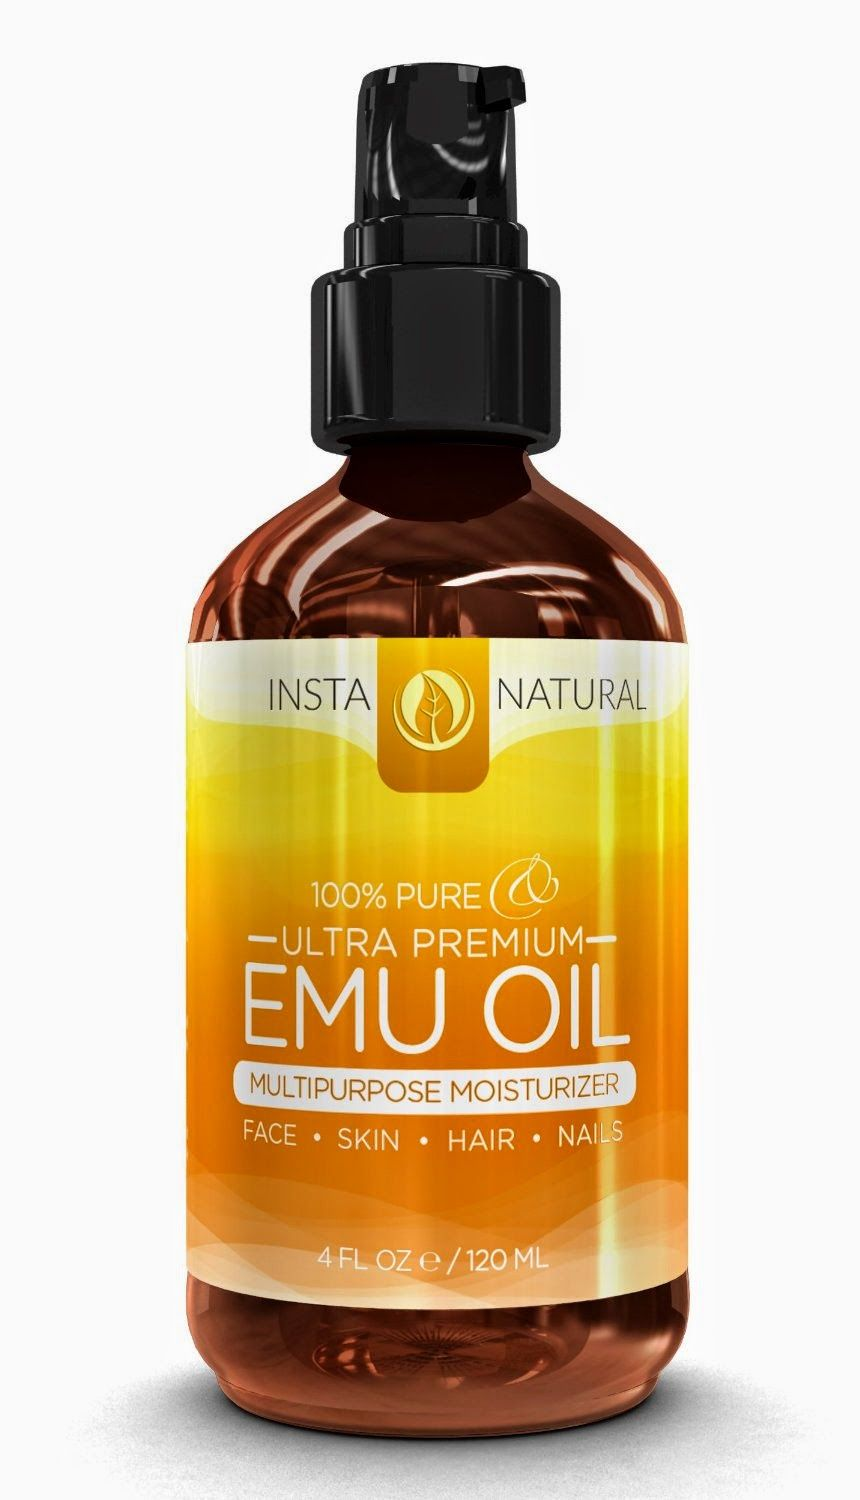 100 Pure Emu Oil Best Natural Oil For Face, Skin, Hair